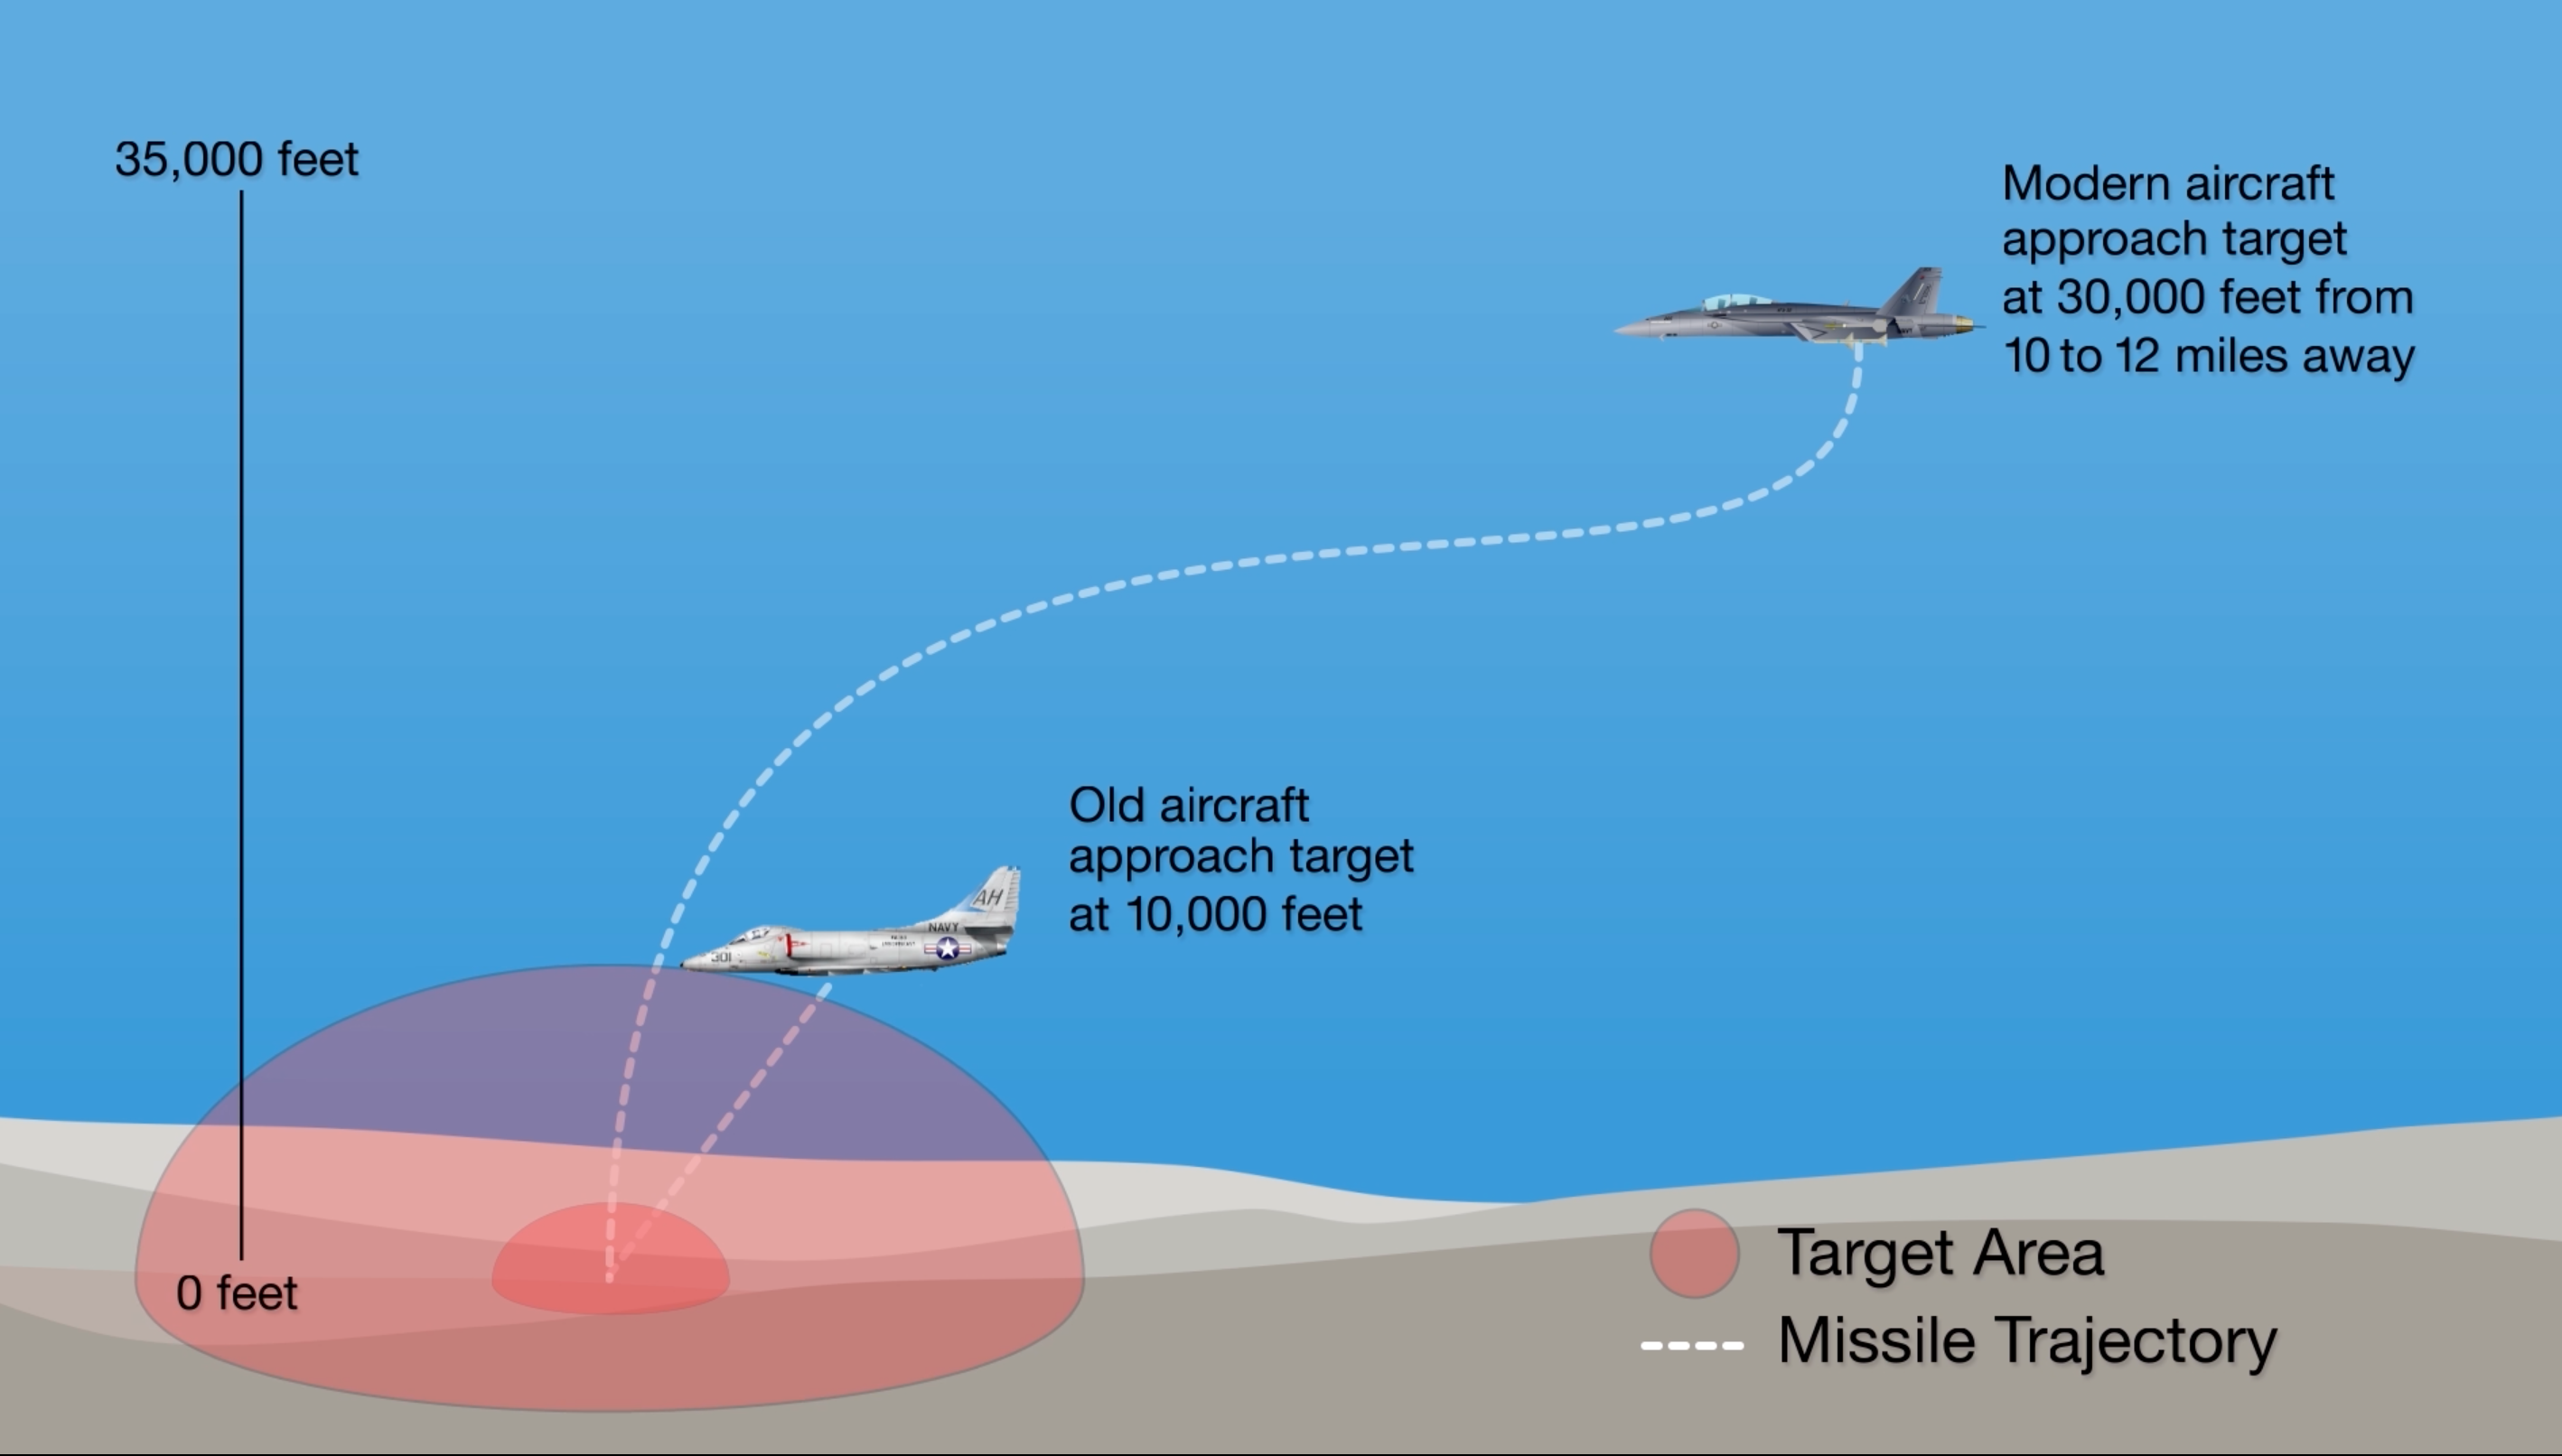 Illustration on how modern aircraft and weapons are limited by the current range sizes, according to the service. US Navy Image